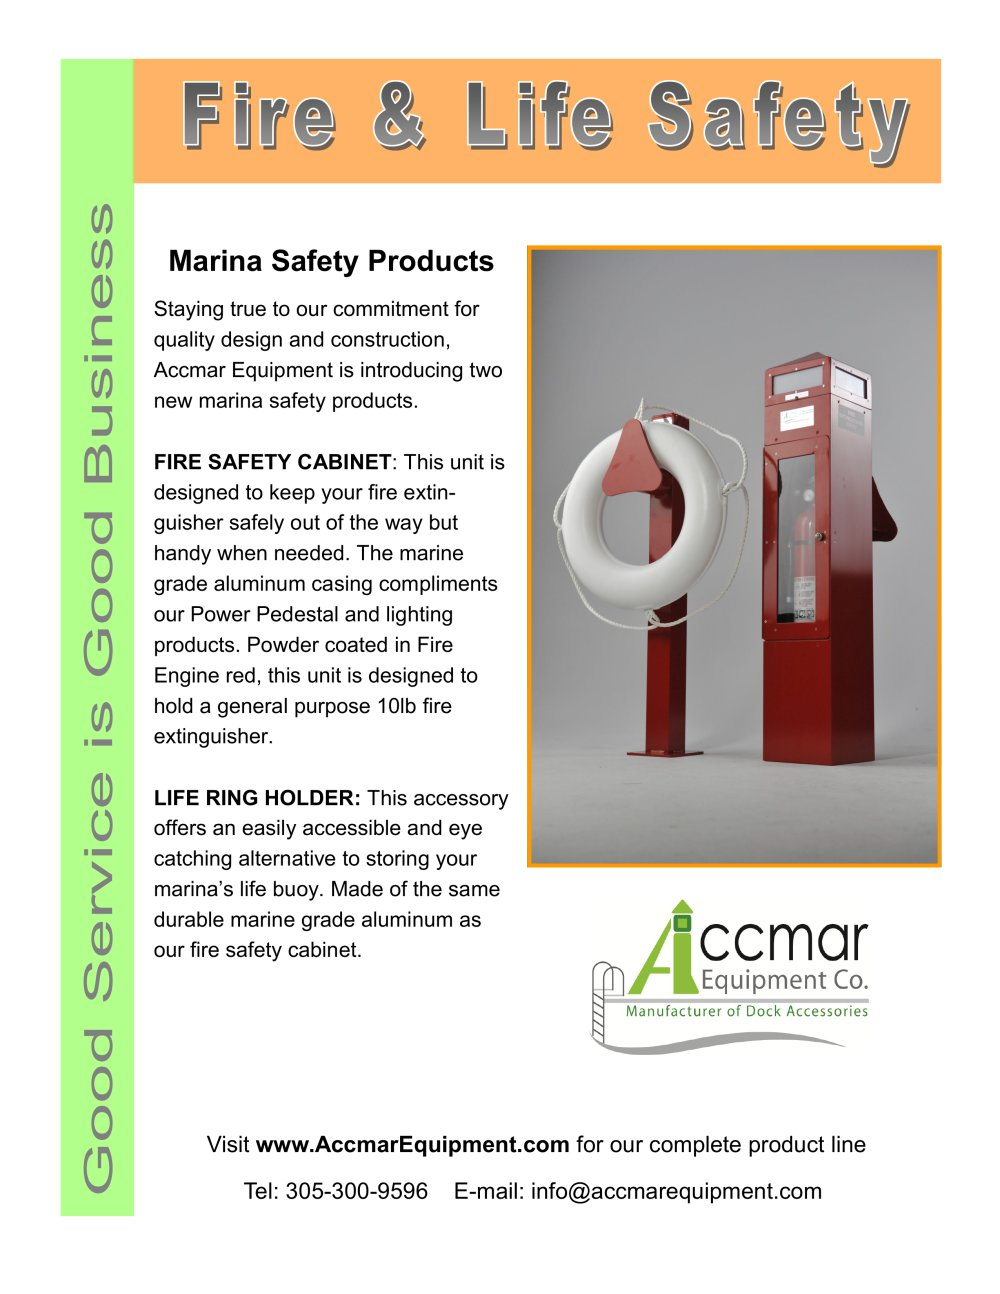 Fire Equipment Cabinet Fire Life Safety Products Accmar Equipment Company Pdf